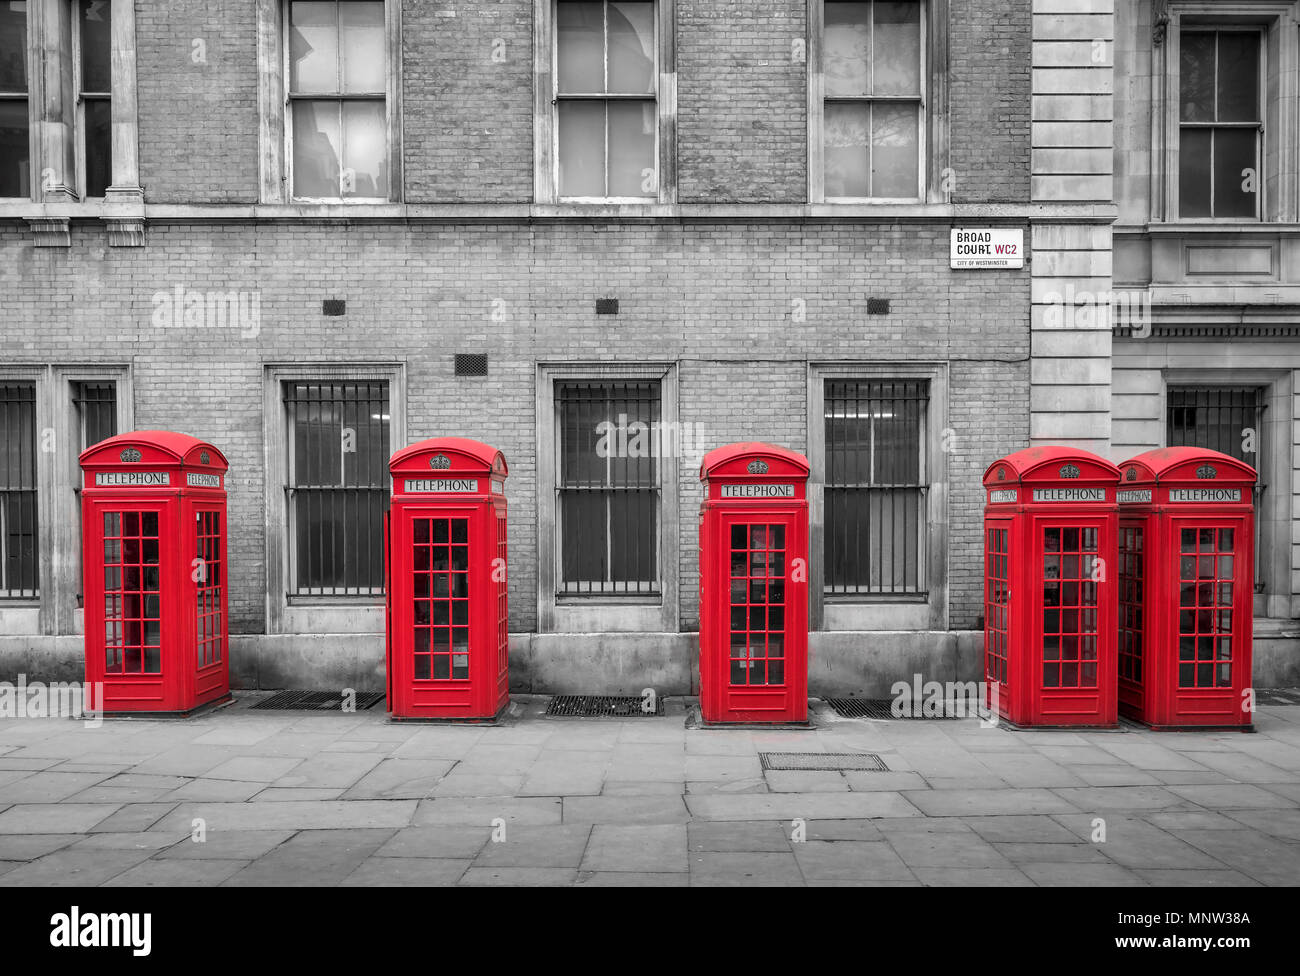 A row of British Red Telephone Boxes, Broad Court, Covent Garden, London, England, UK - Stock Image